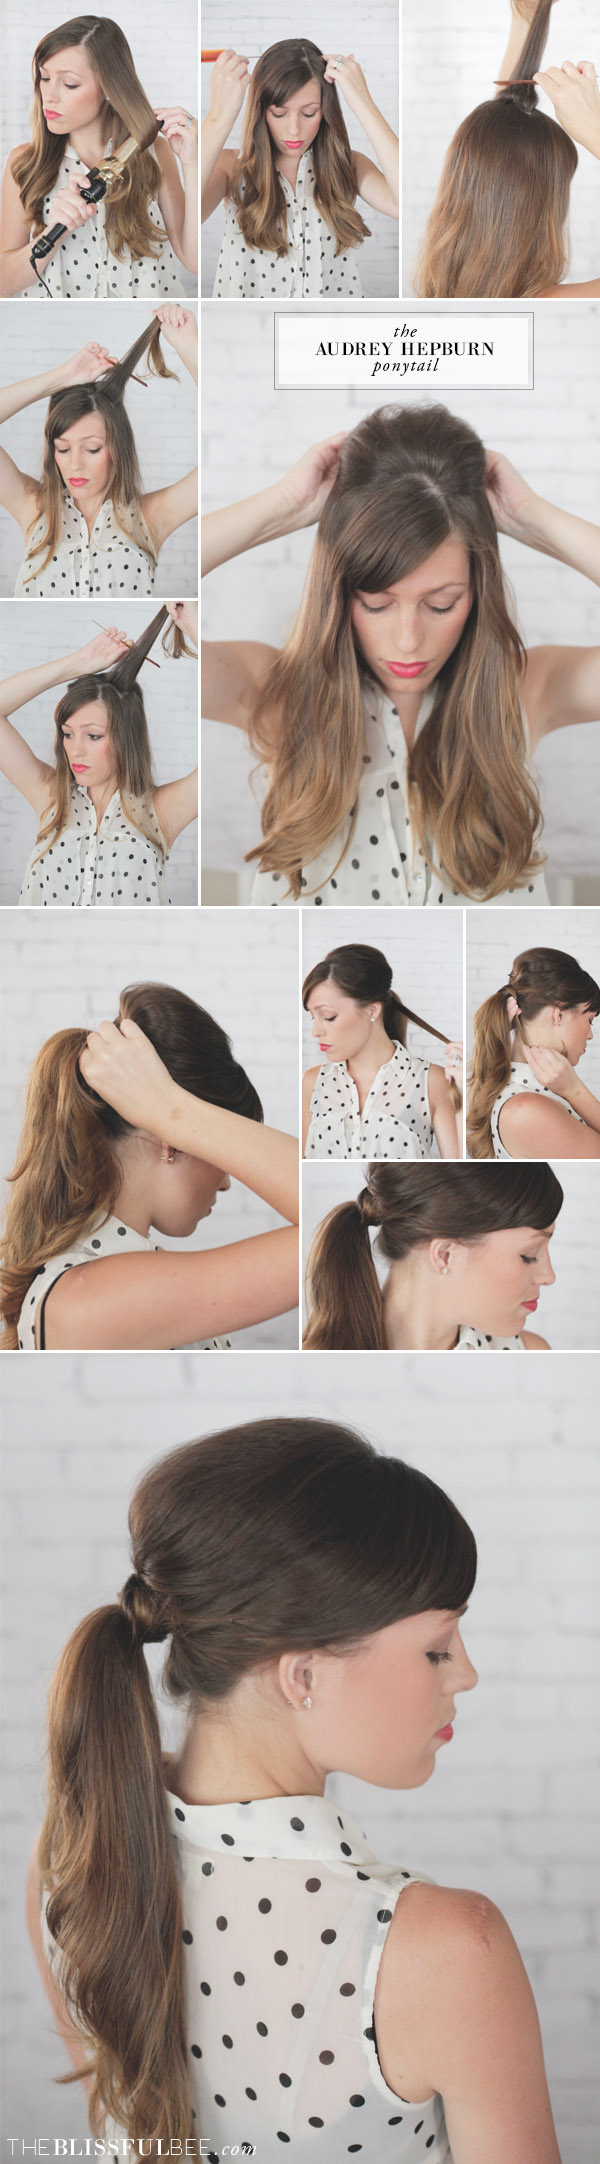 Audrey Hepburn Ponytail - The Blissful Bee